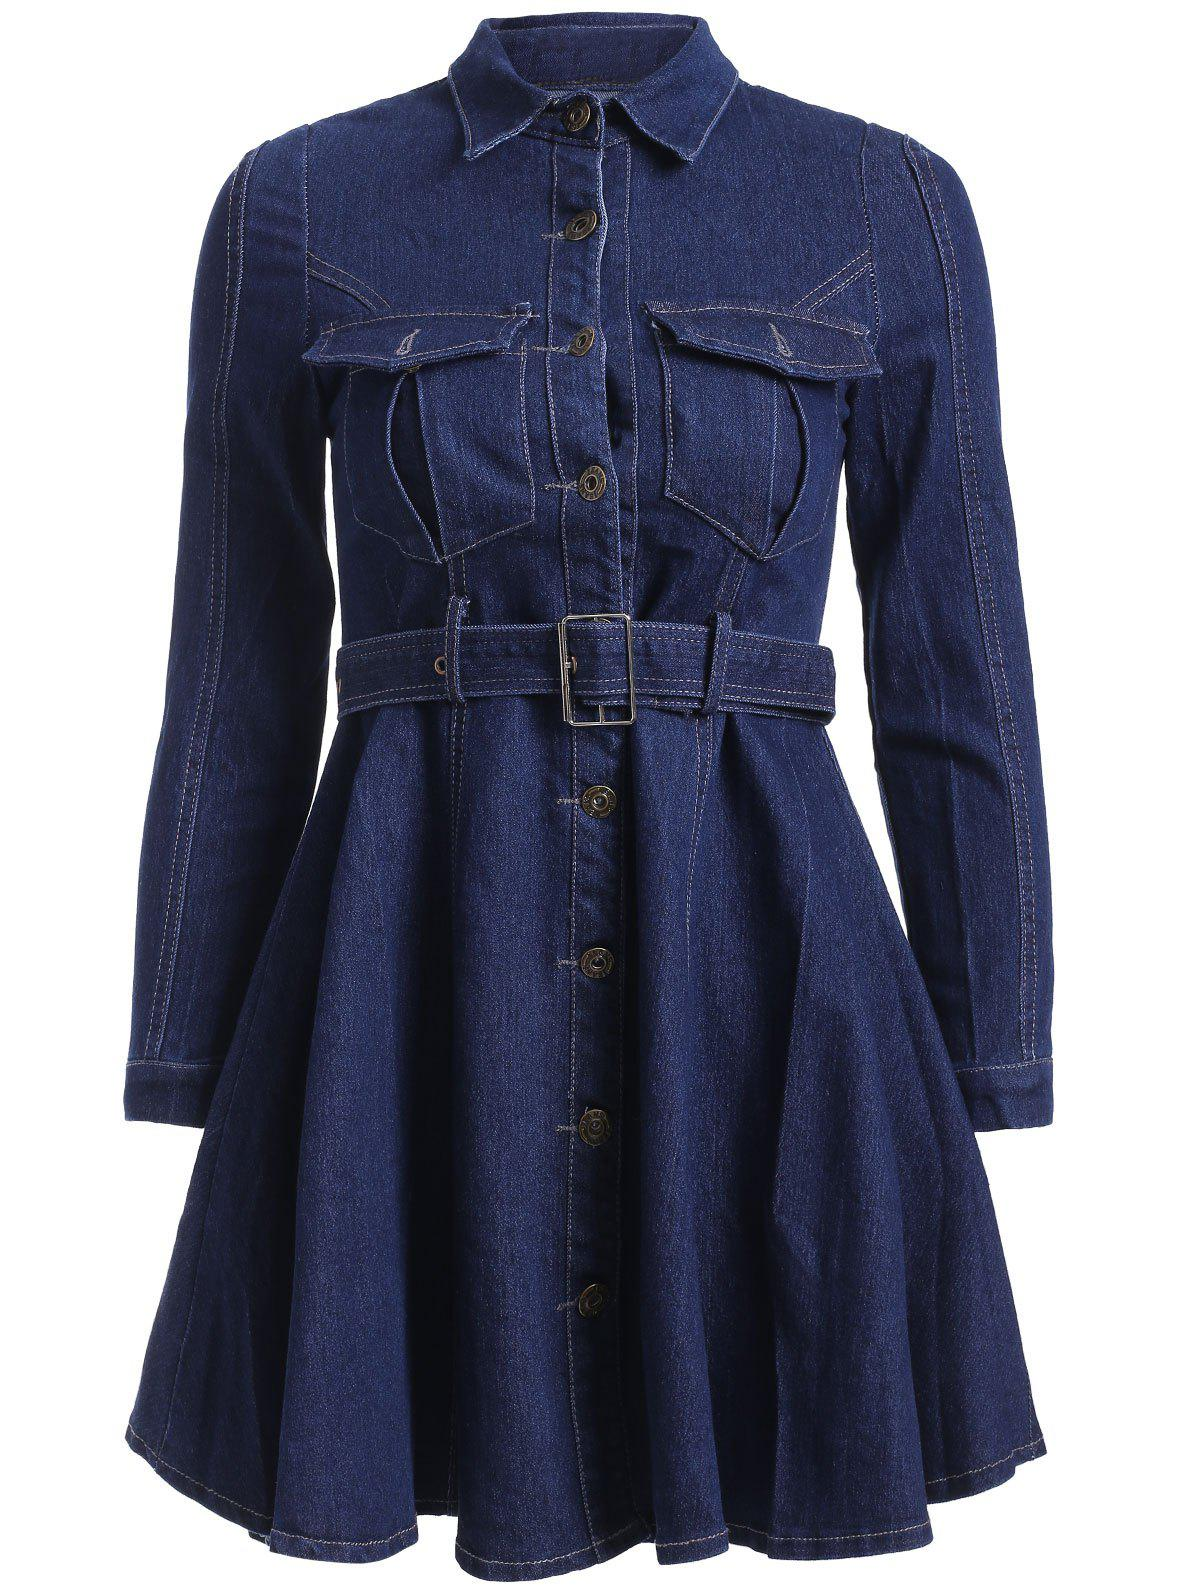 Long Sleeve Front Pockets Denim Shirt Dress - DENIM BLUE XL